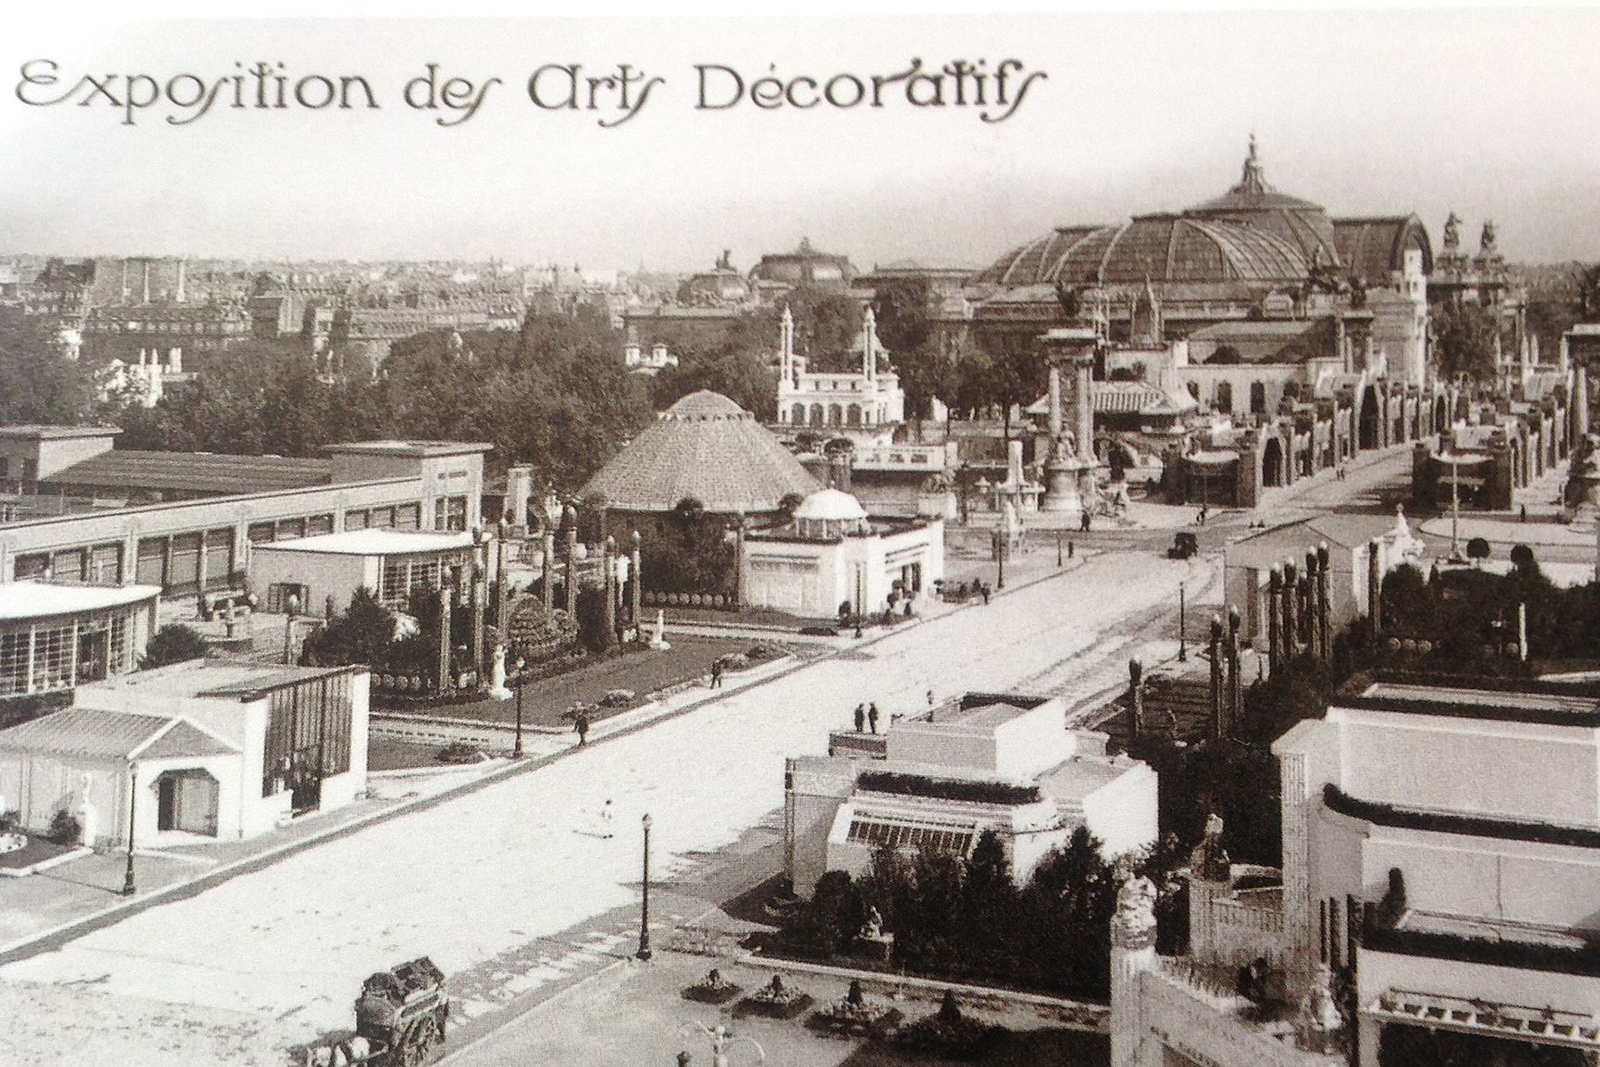 The 1925 Exposition Internationale des Arts Décoratifs in Paris is credited as being the birthplace of the Art Deco movement